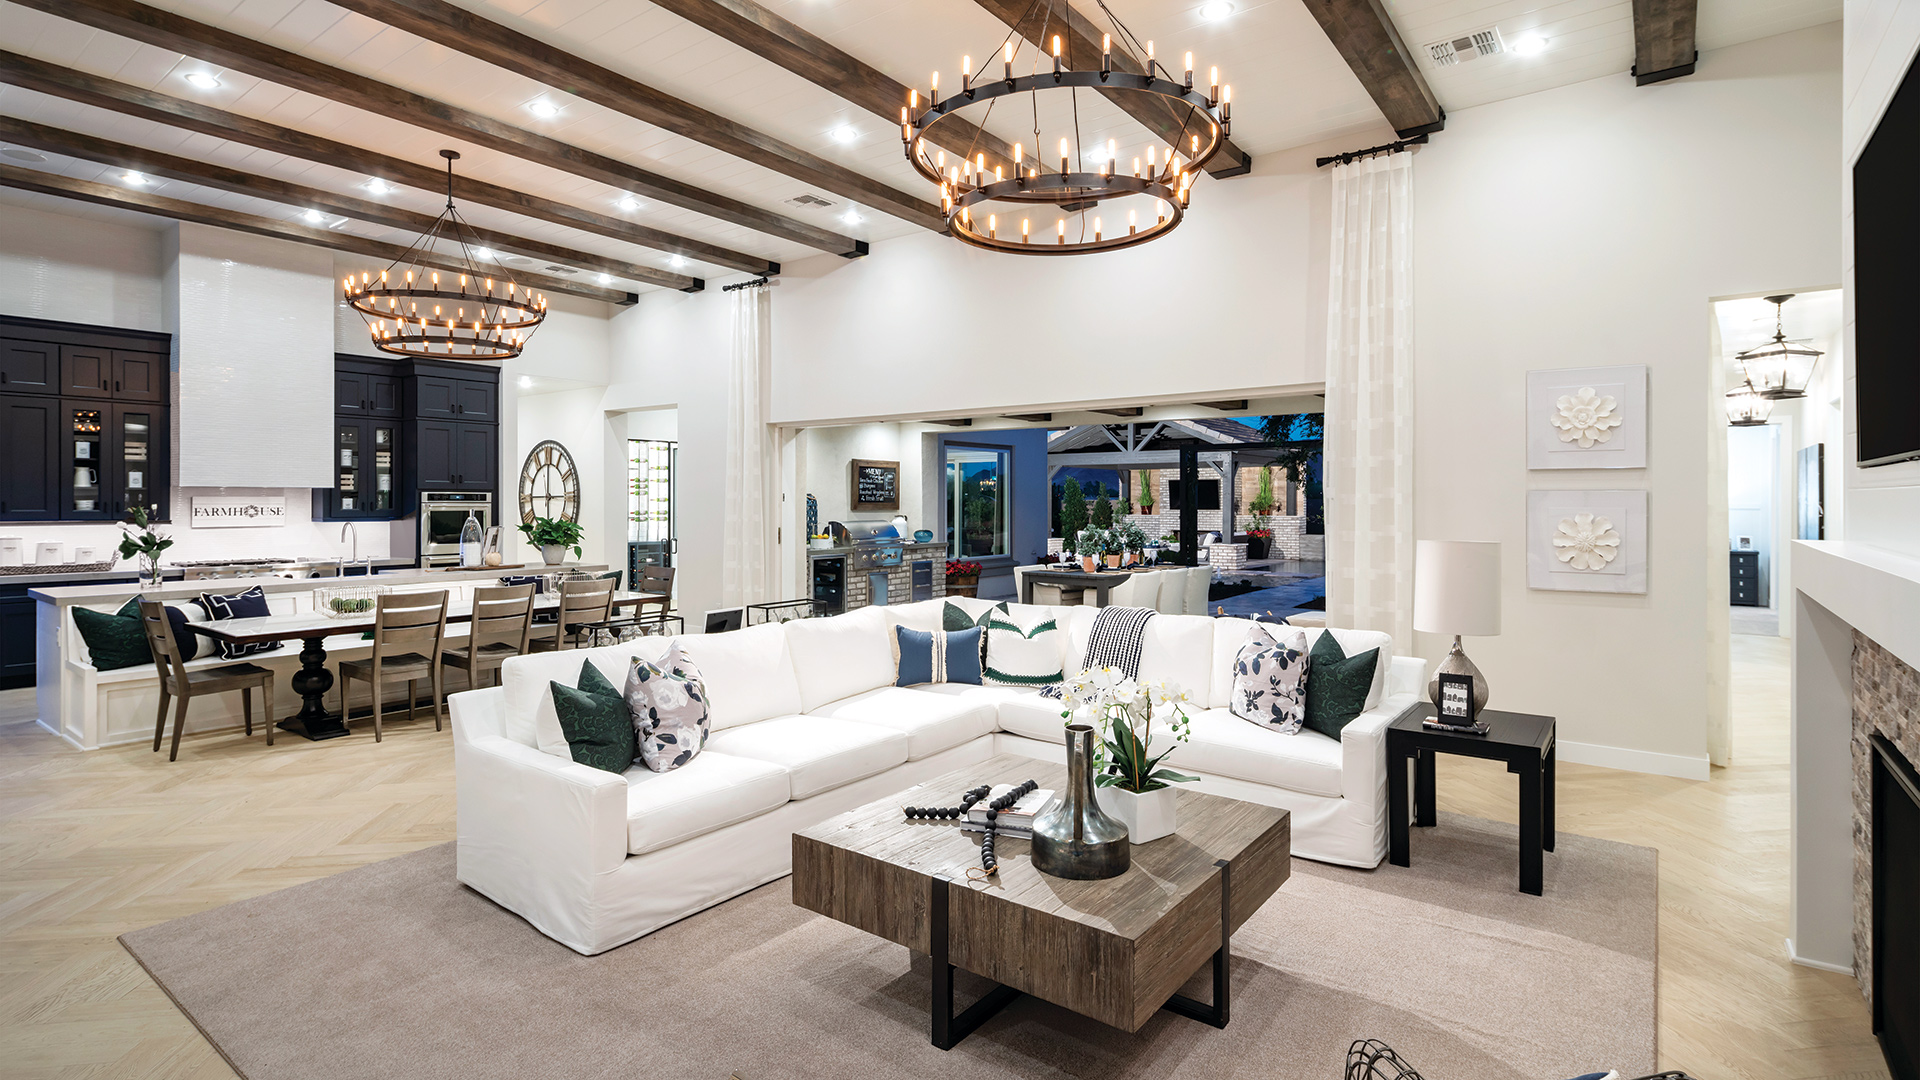 Lusitano Ranch Toll Brothers - Lusitano Ranch Toll Brothers New Construction Homes for sale - New Luxury Homes for Sale in Las Vegas Lusitano Ranch - Luxury New Construction Homes - Toll Brothers Las Vegas